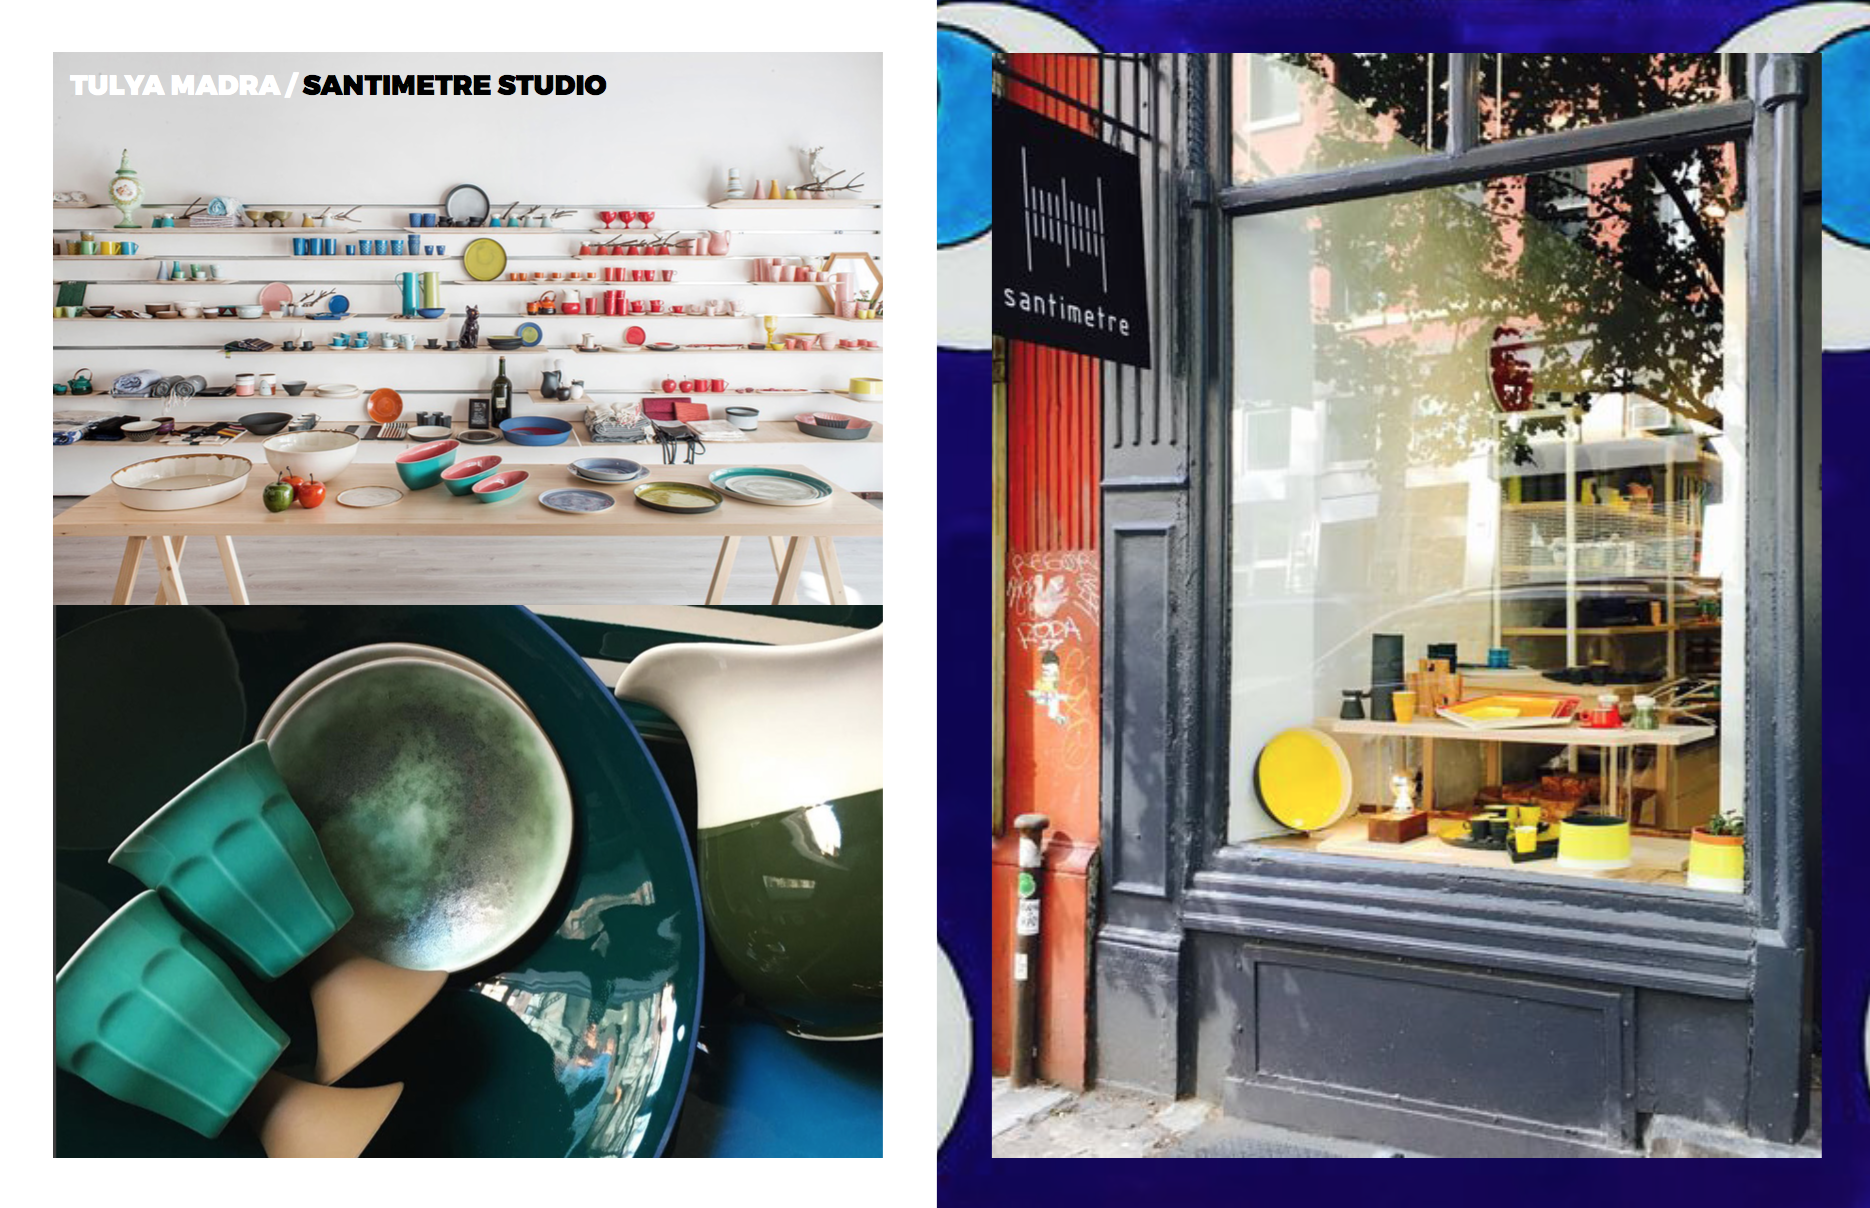 Left: Above: Right: Inside the store in Turkey, Image courtesy of  Marie Claire Maison , Below: Ocean greens in what Tulya a pirates treasure, Image courtesy of  Santi  metre Studio  Right: The store front in Soho, NYC, Image courtesy of  The Local Artisan Guide .